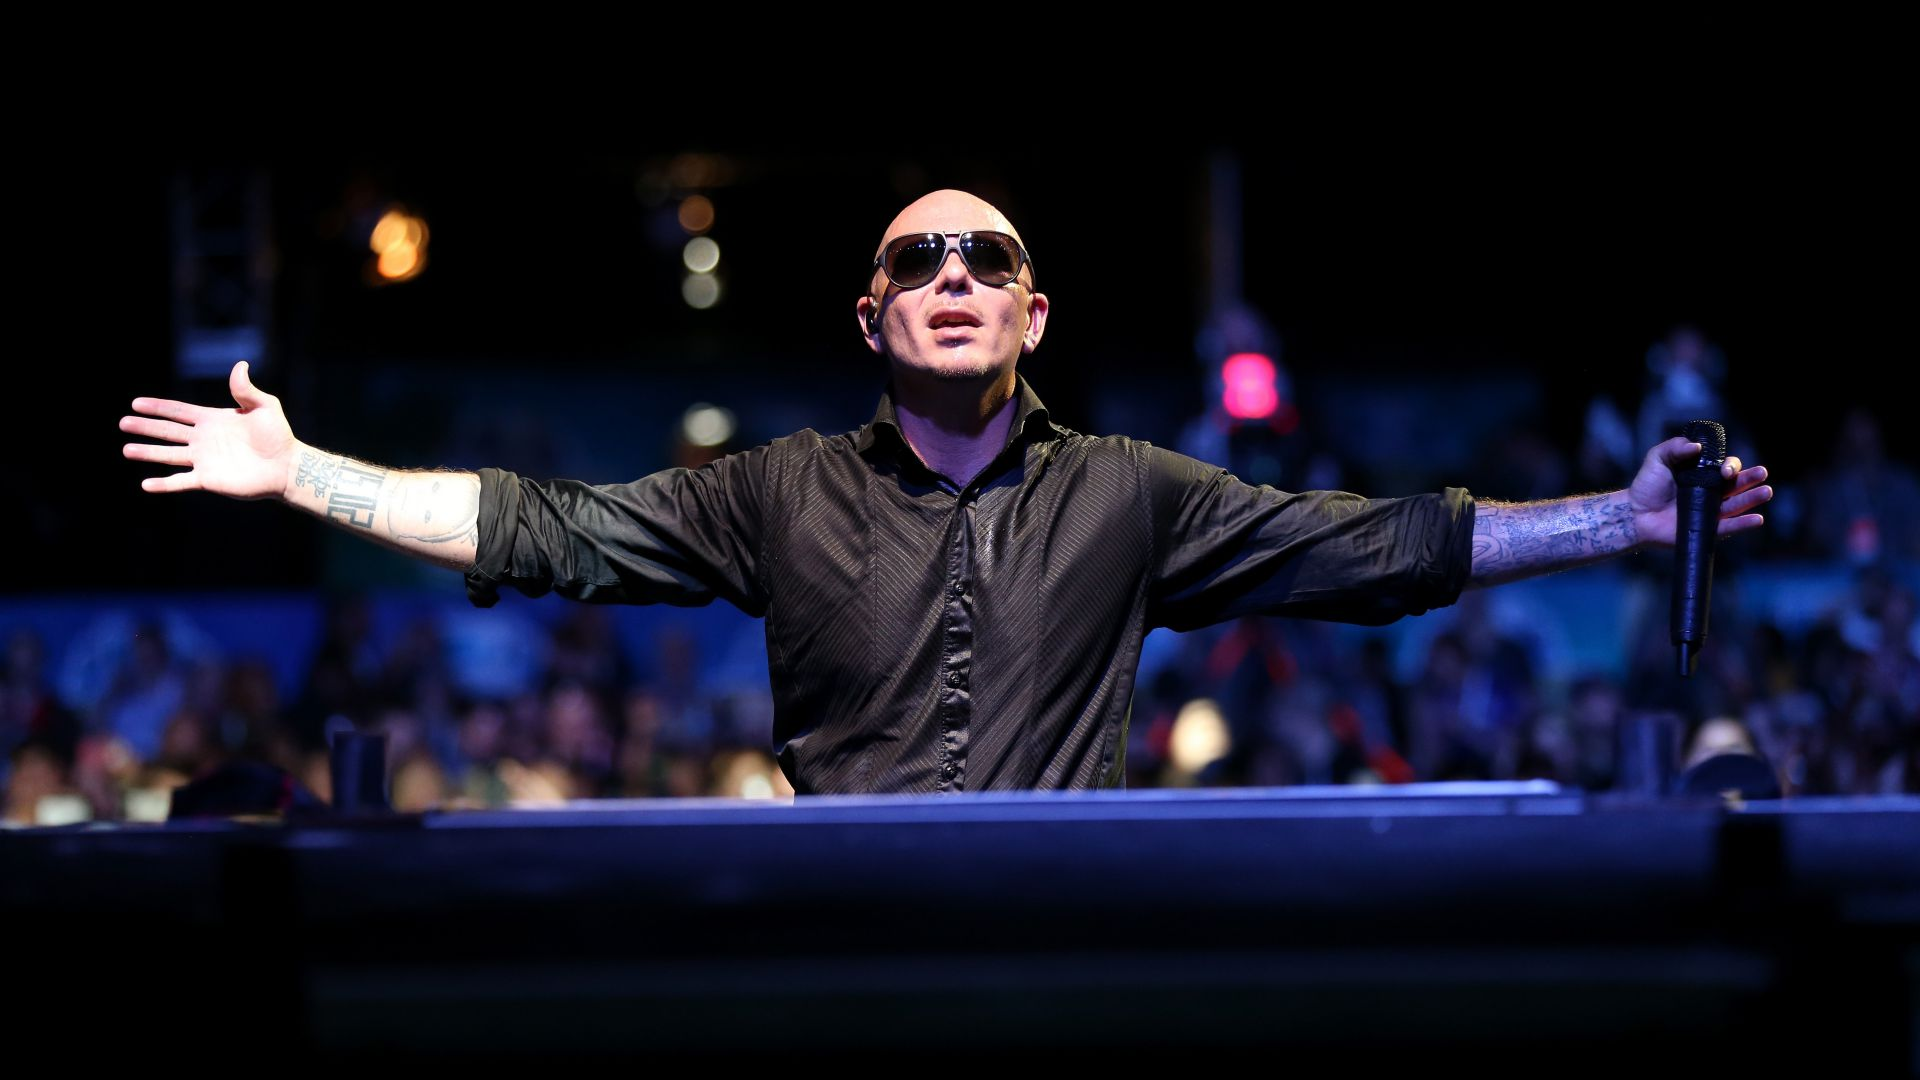 Pitbull, Top music artist and bands, singer, rapper (horizontal)